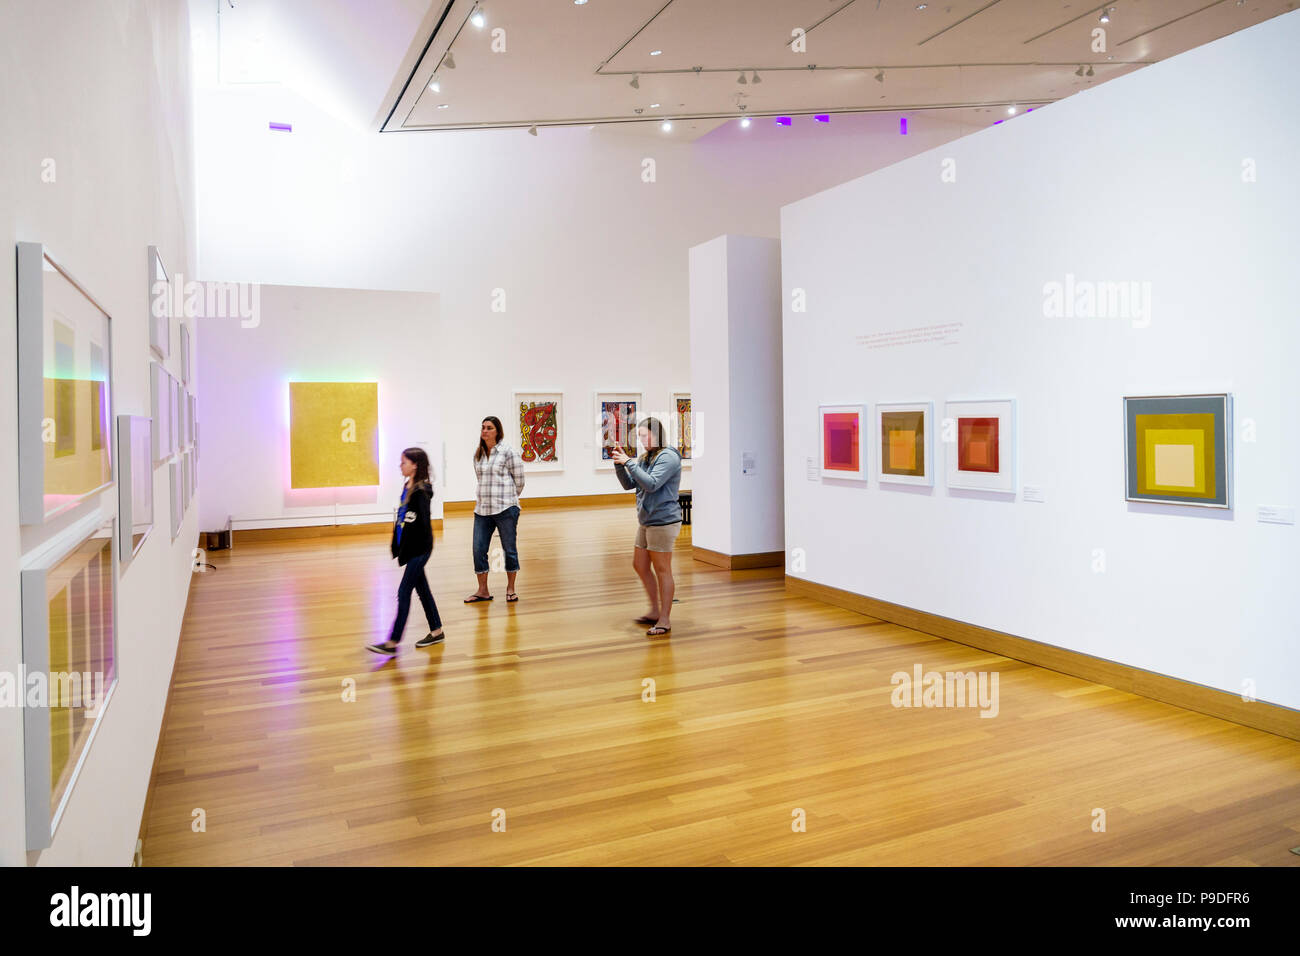 Florida Gainesville University of Florida Samuel P. Harn Museum of Art gallery Poetic and Political exhibition paintings Josef Albers woman girl looki - Stock Image